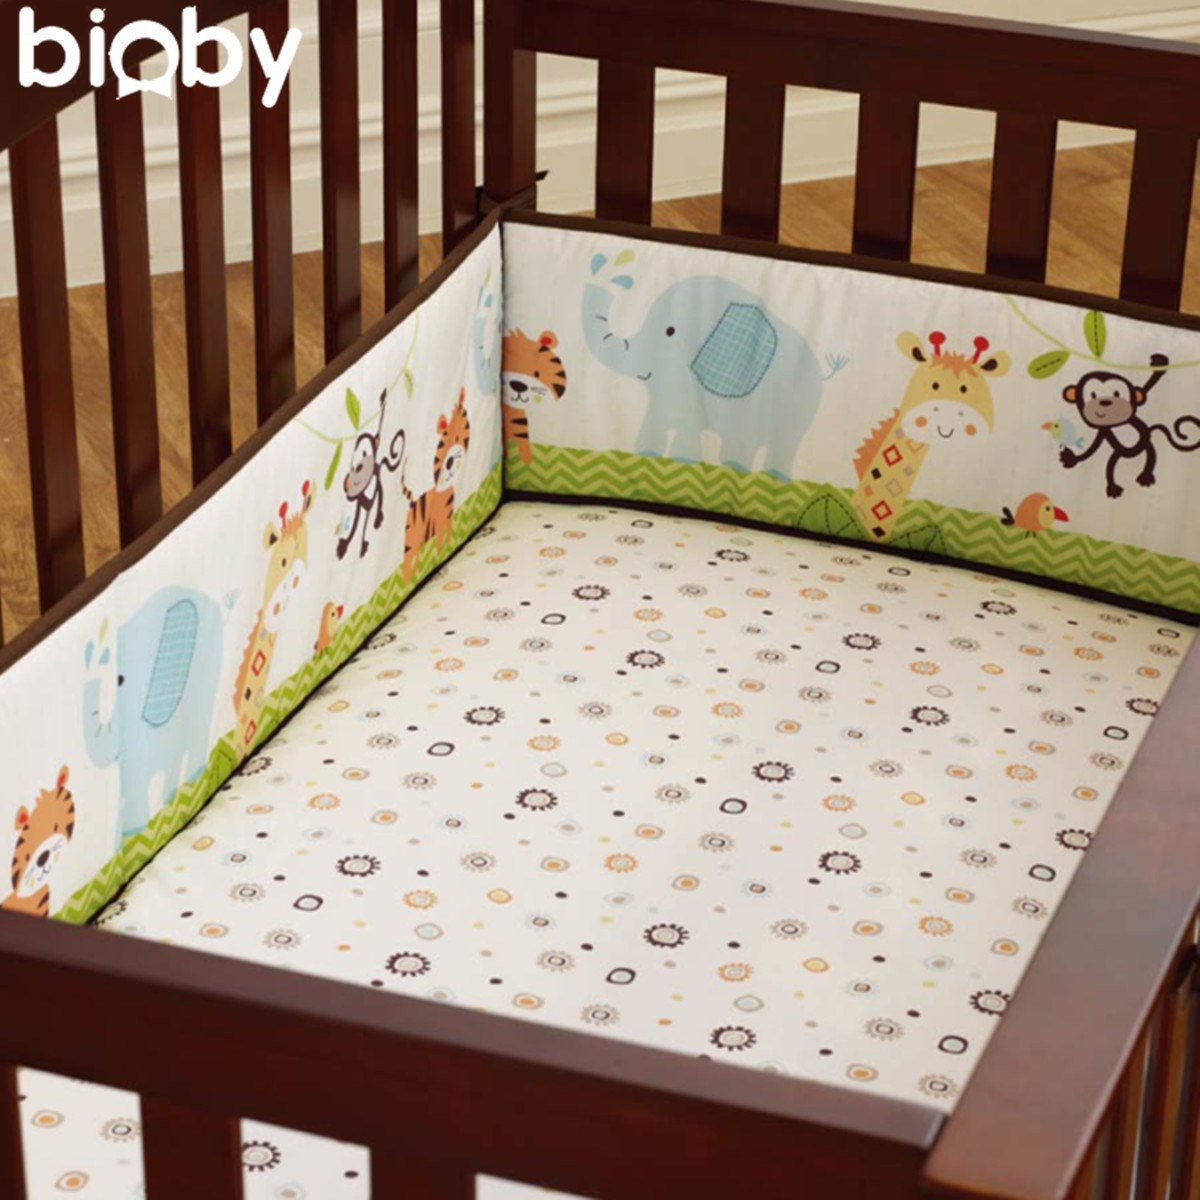 Crib bumper for sale philippines - Large 4pcs Cotton Baby Infant Cot Crib Bumper Safety Protector Toddler Nursery Bedding Set Infantile Cushion